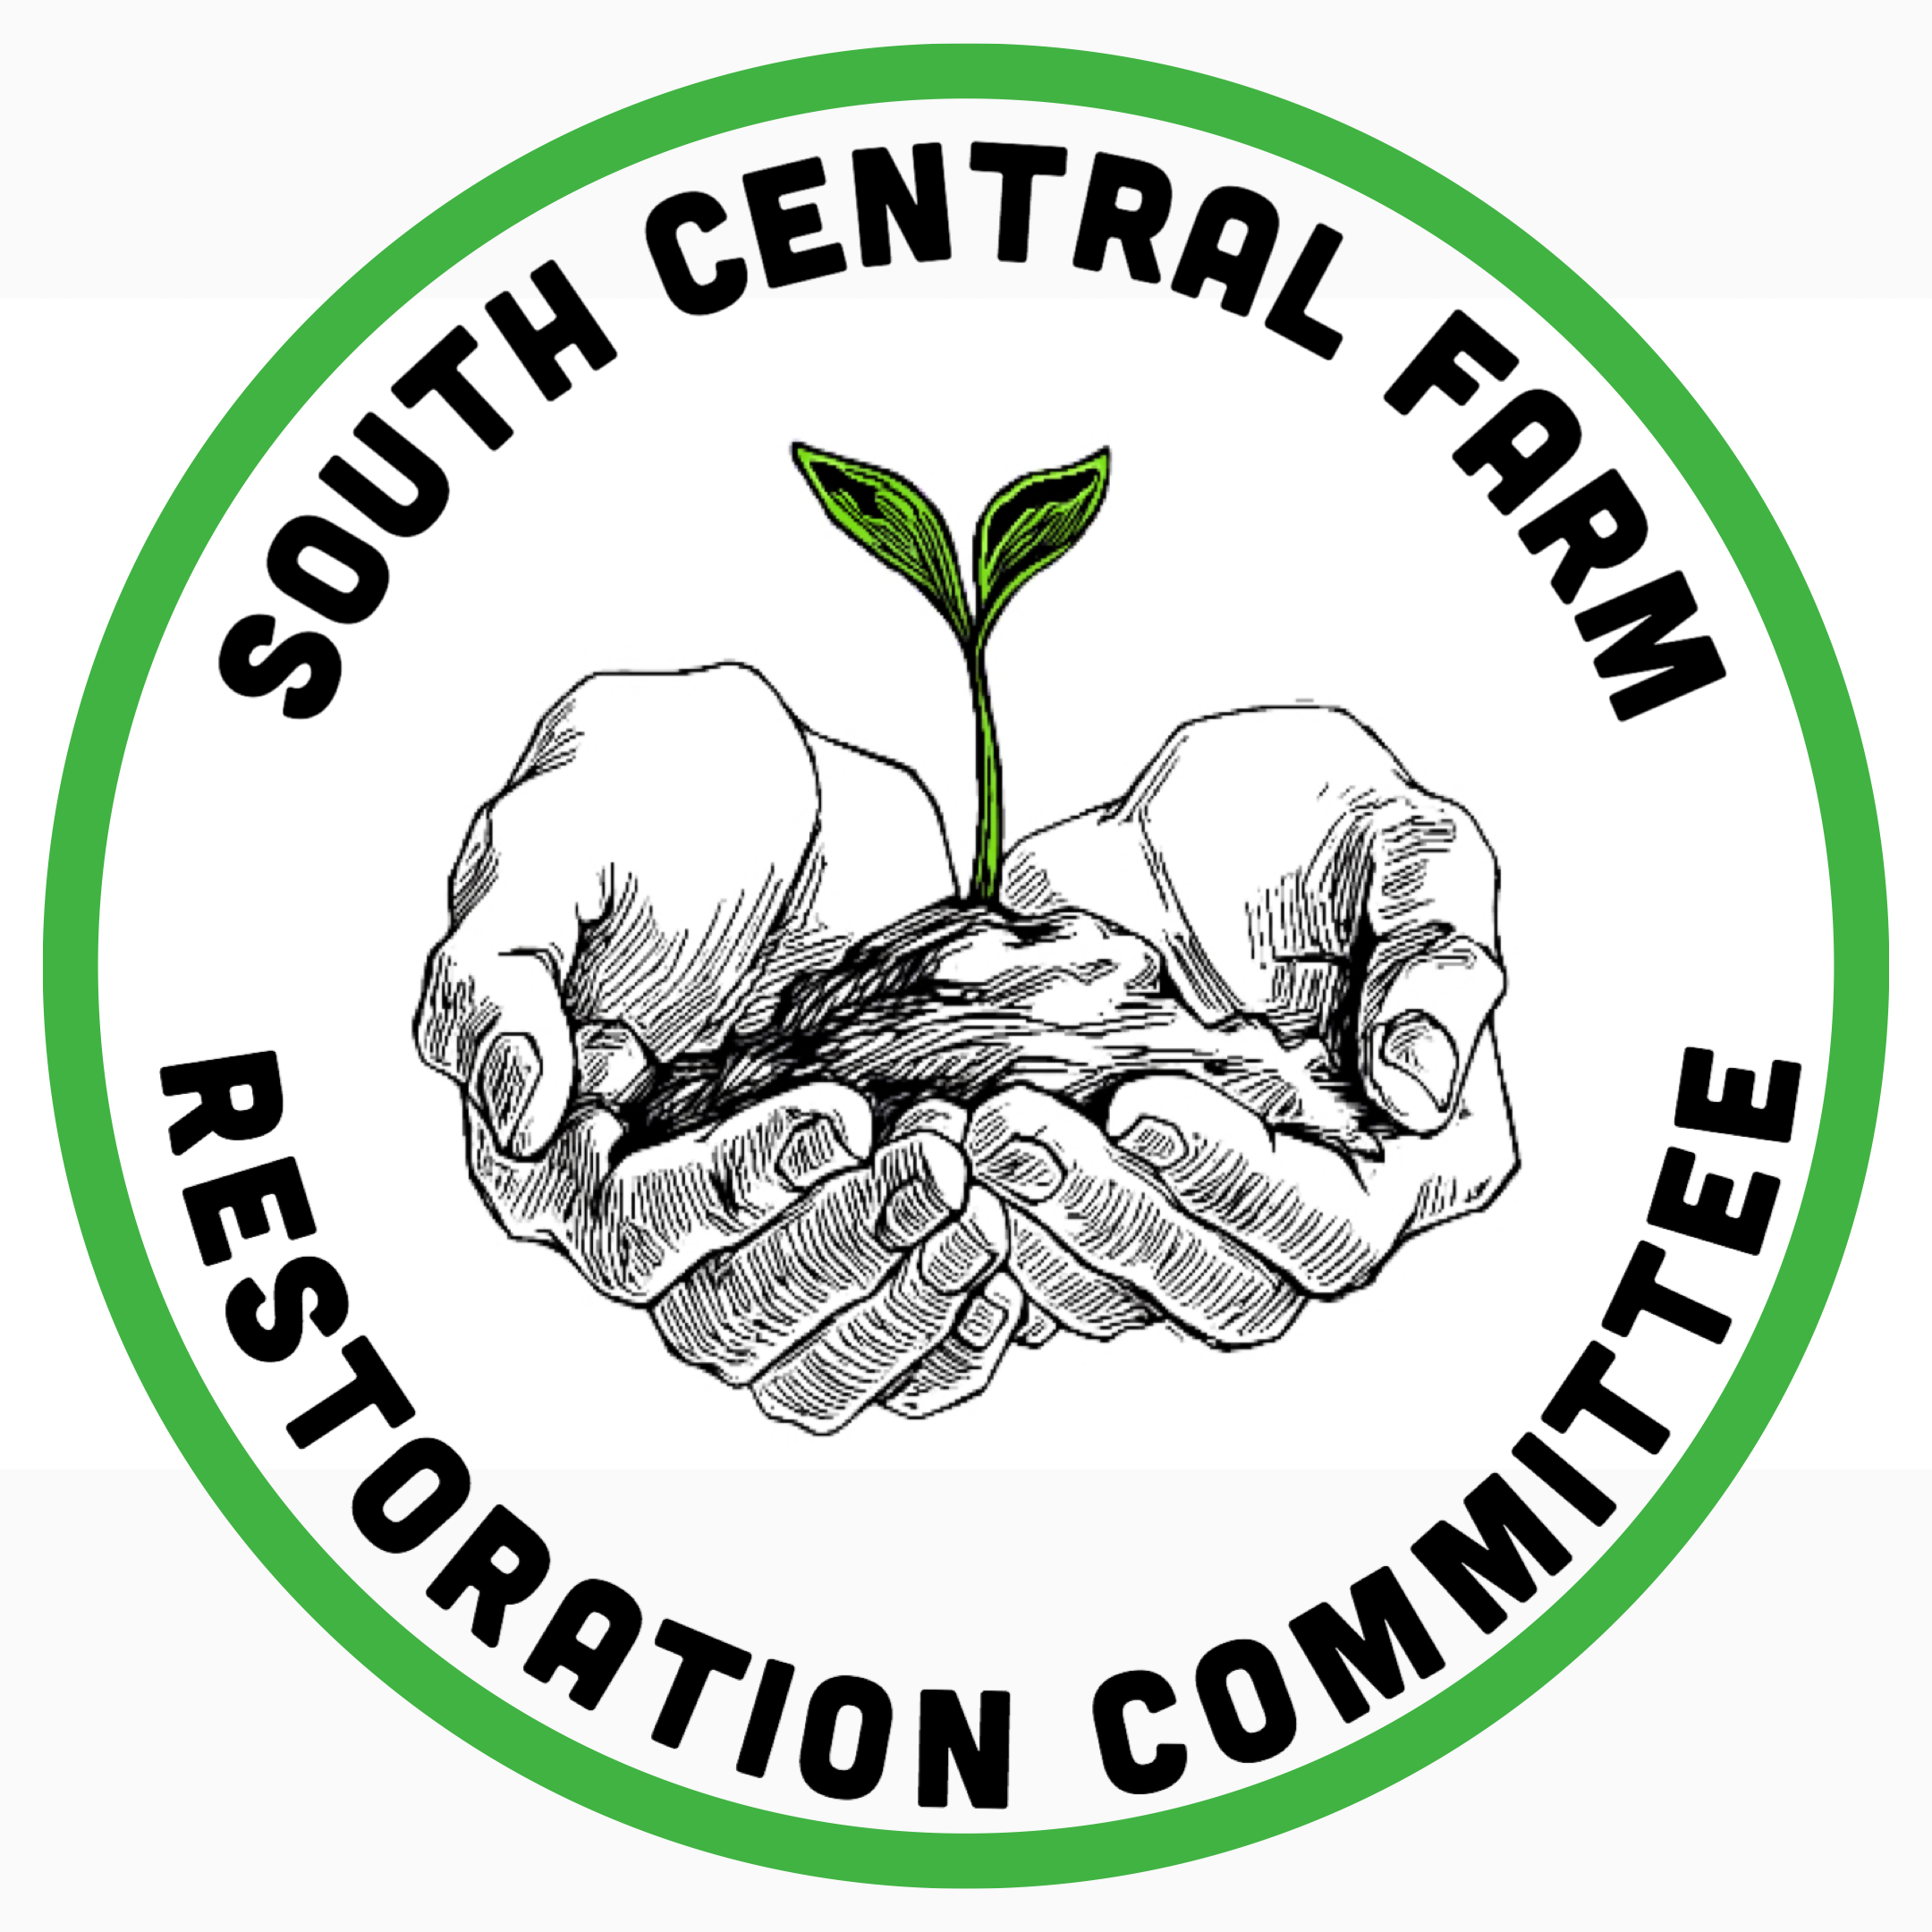 South Central Farm Restoration Committee